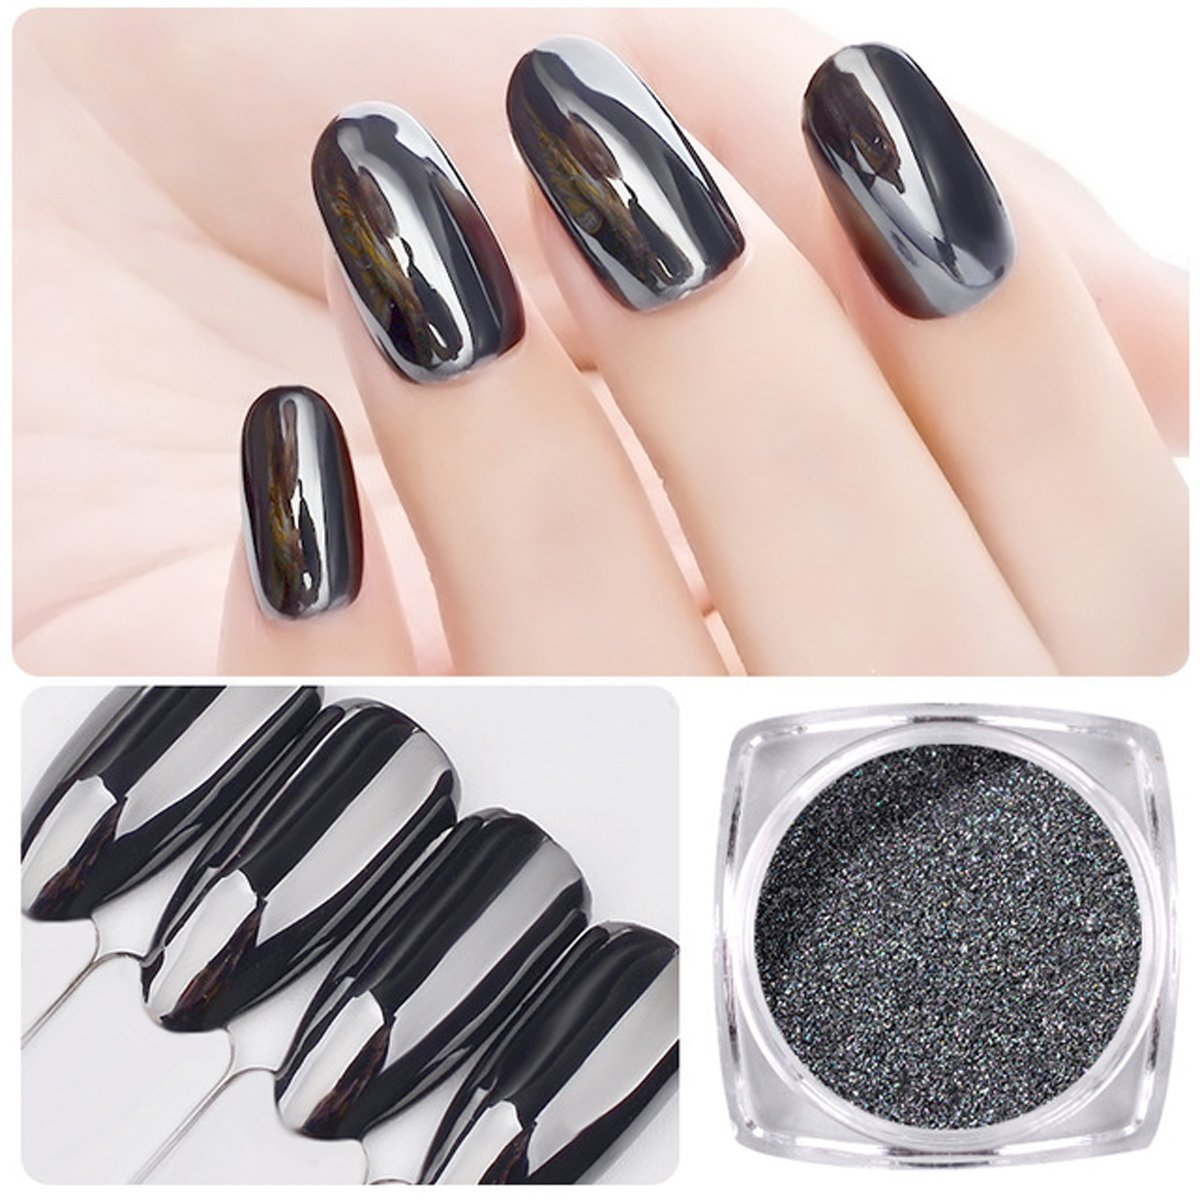 Saviland 2pcs 1g Magic Mirror Black Nail Glitter Powder Nail Art Chrome Pigment Dust Manicure DIY Nail Decoration